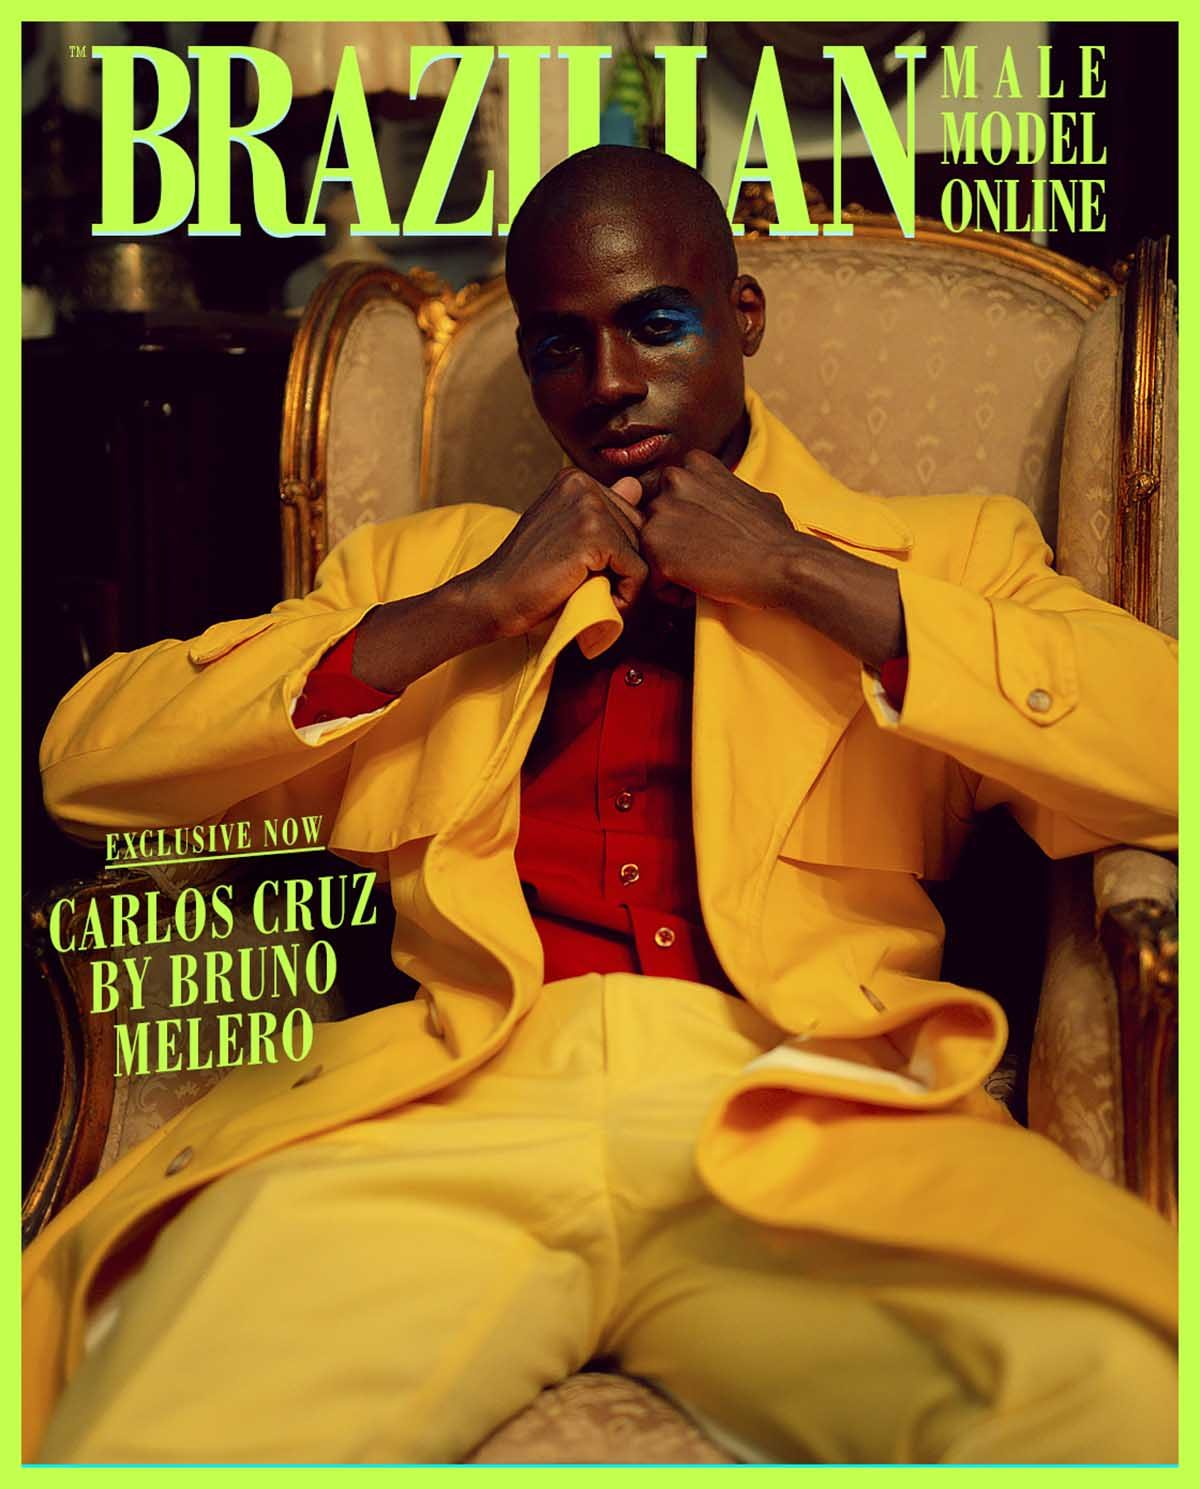 Carlos Cruz by Bruno Malero